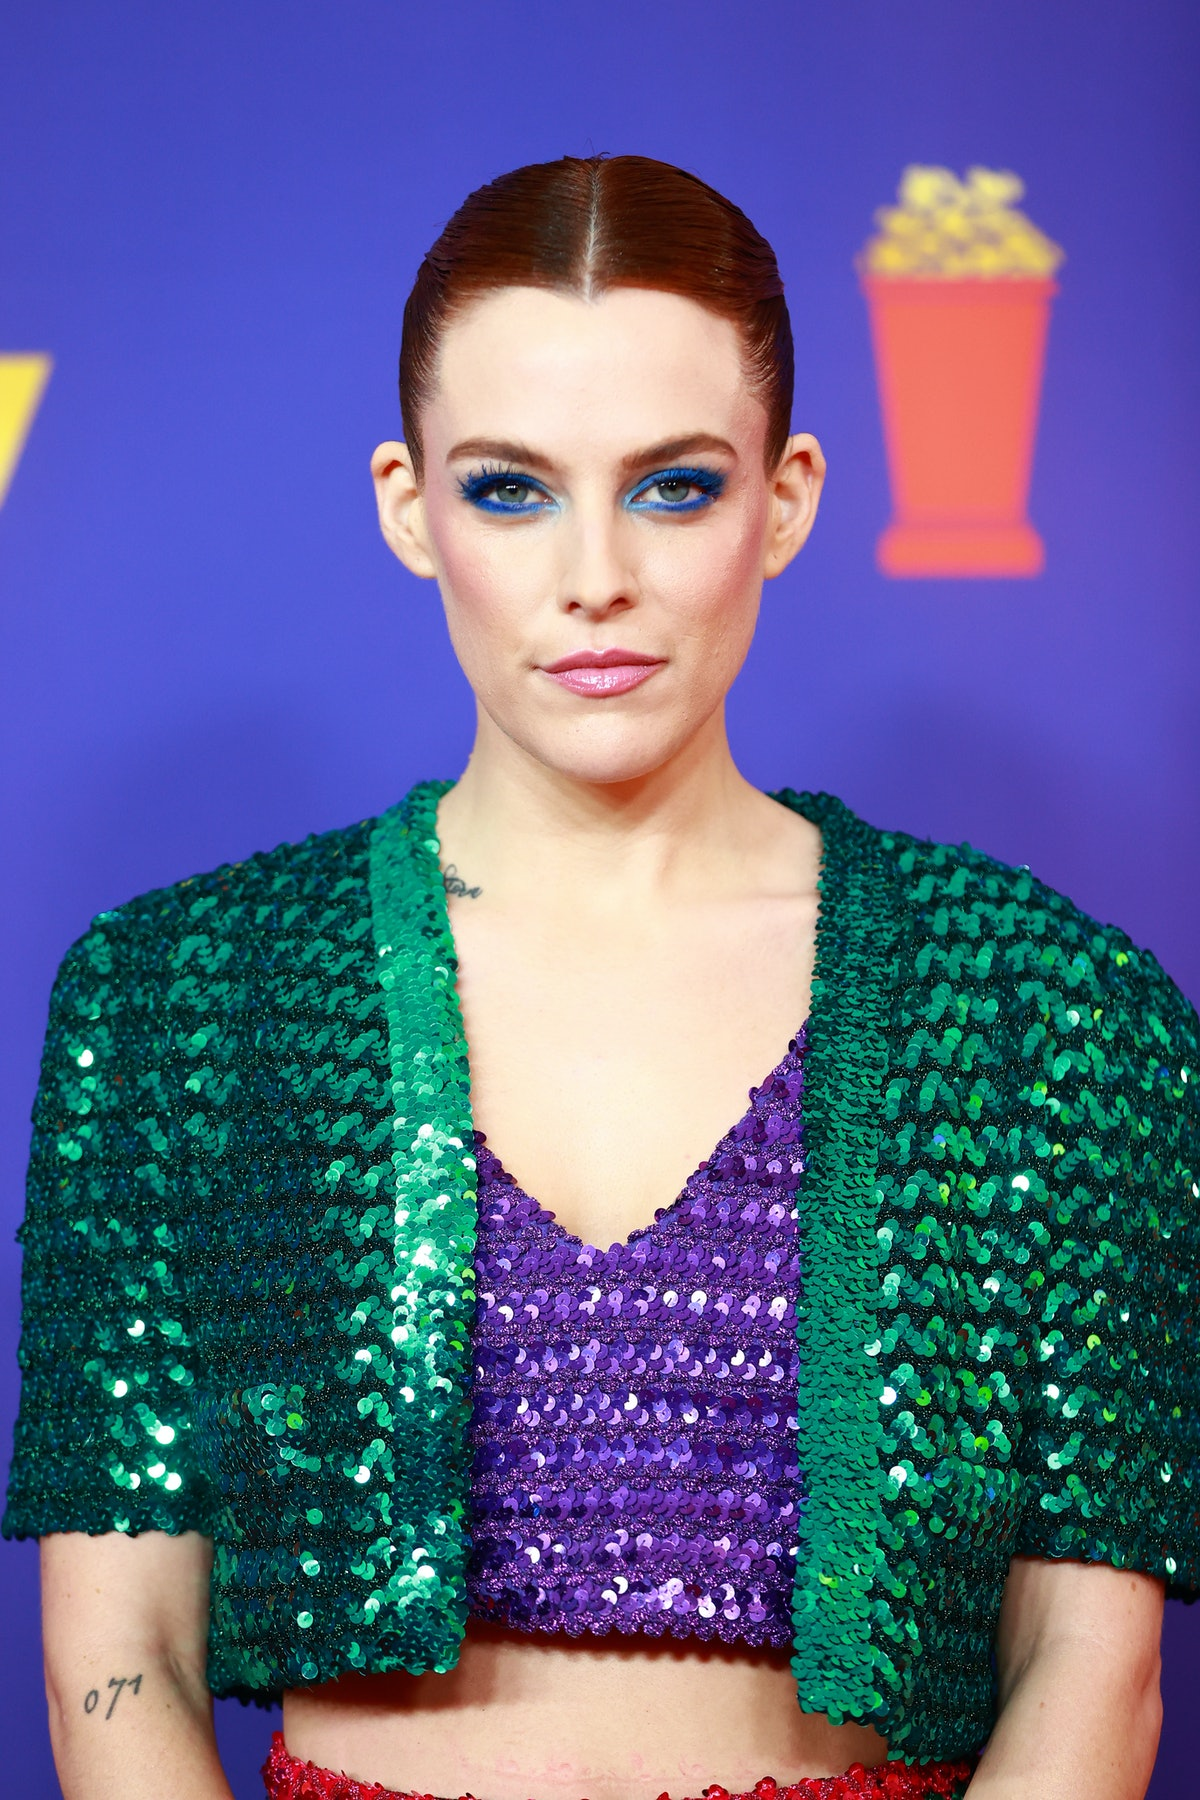 Riley Keough attends the 2021 MTV Movie & TV Awards